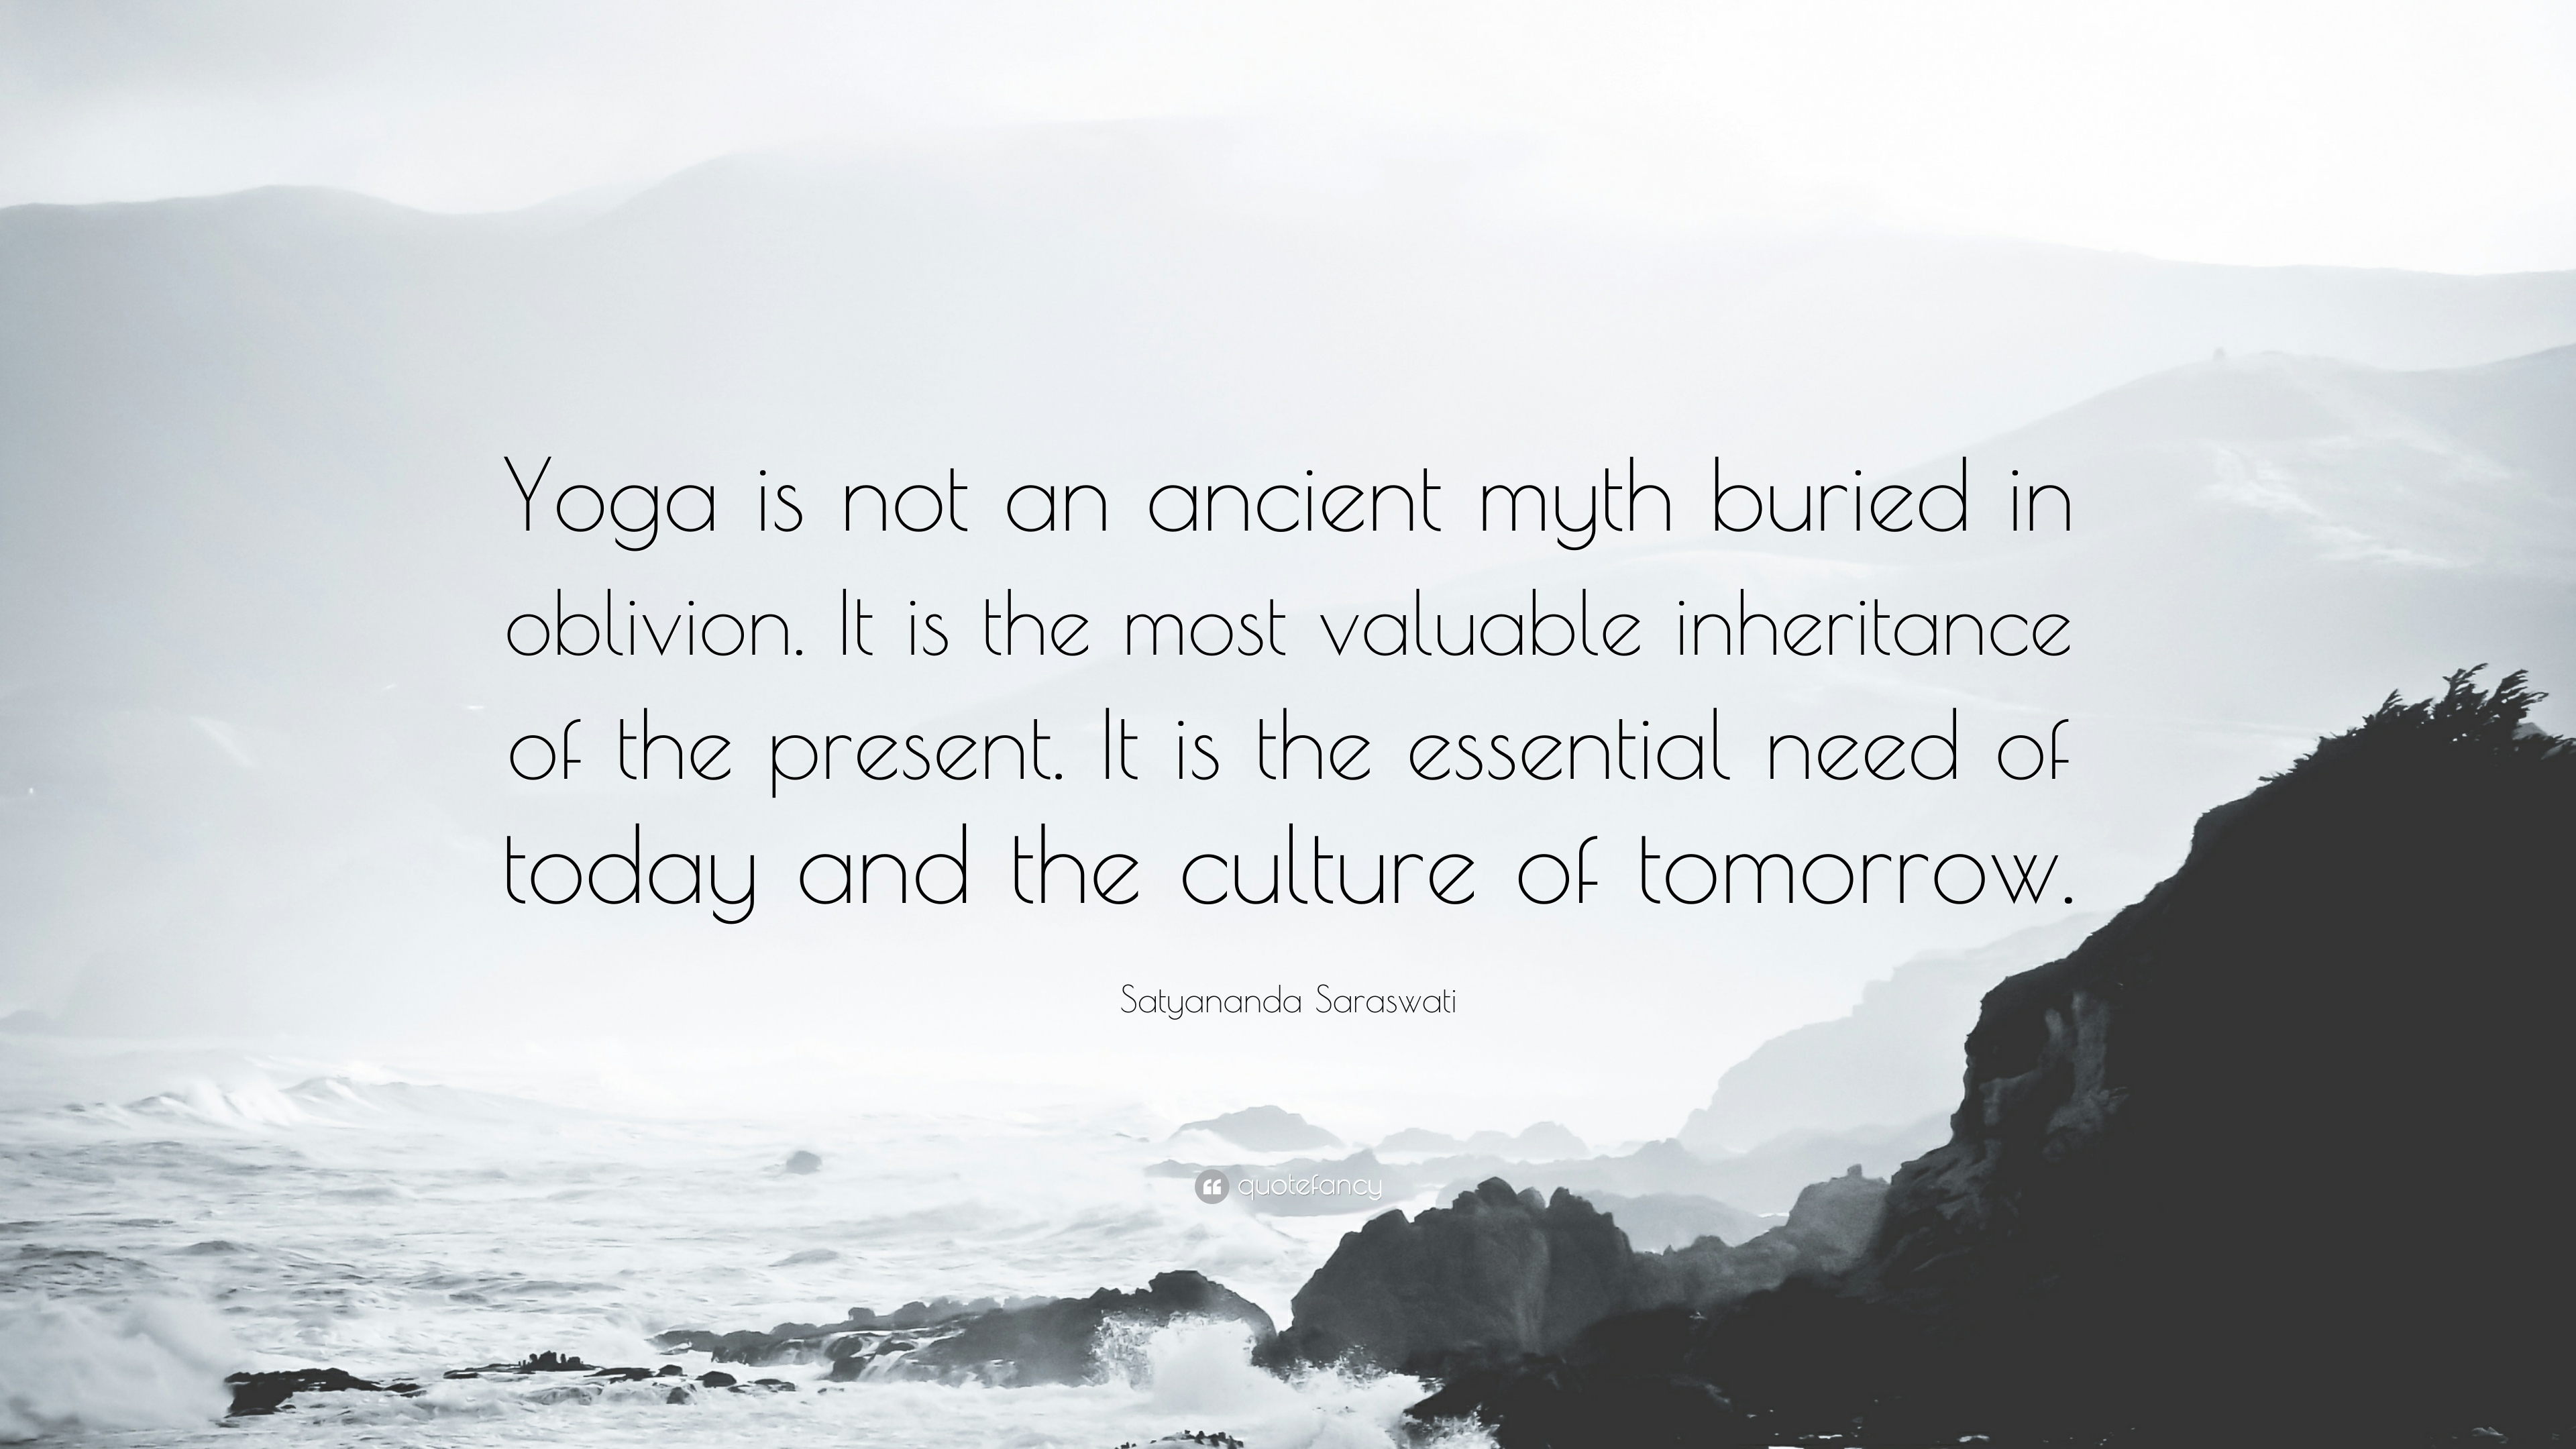 Quotes Yoga Satyananda Saraswati Quotes 4 Wallpapers  Quotefancy